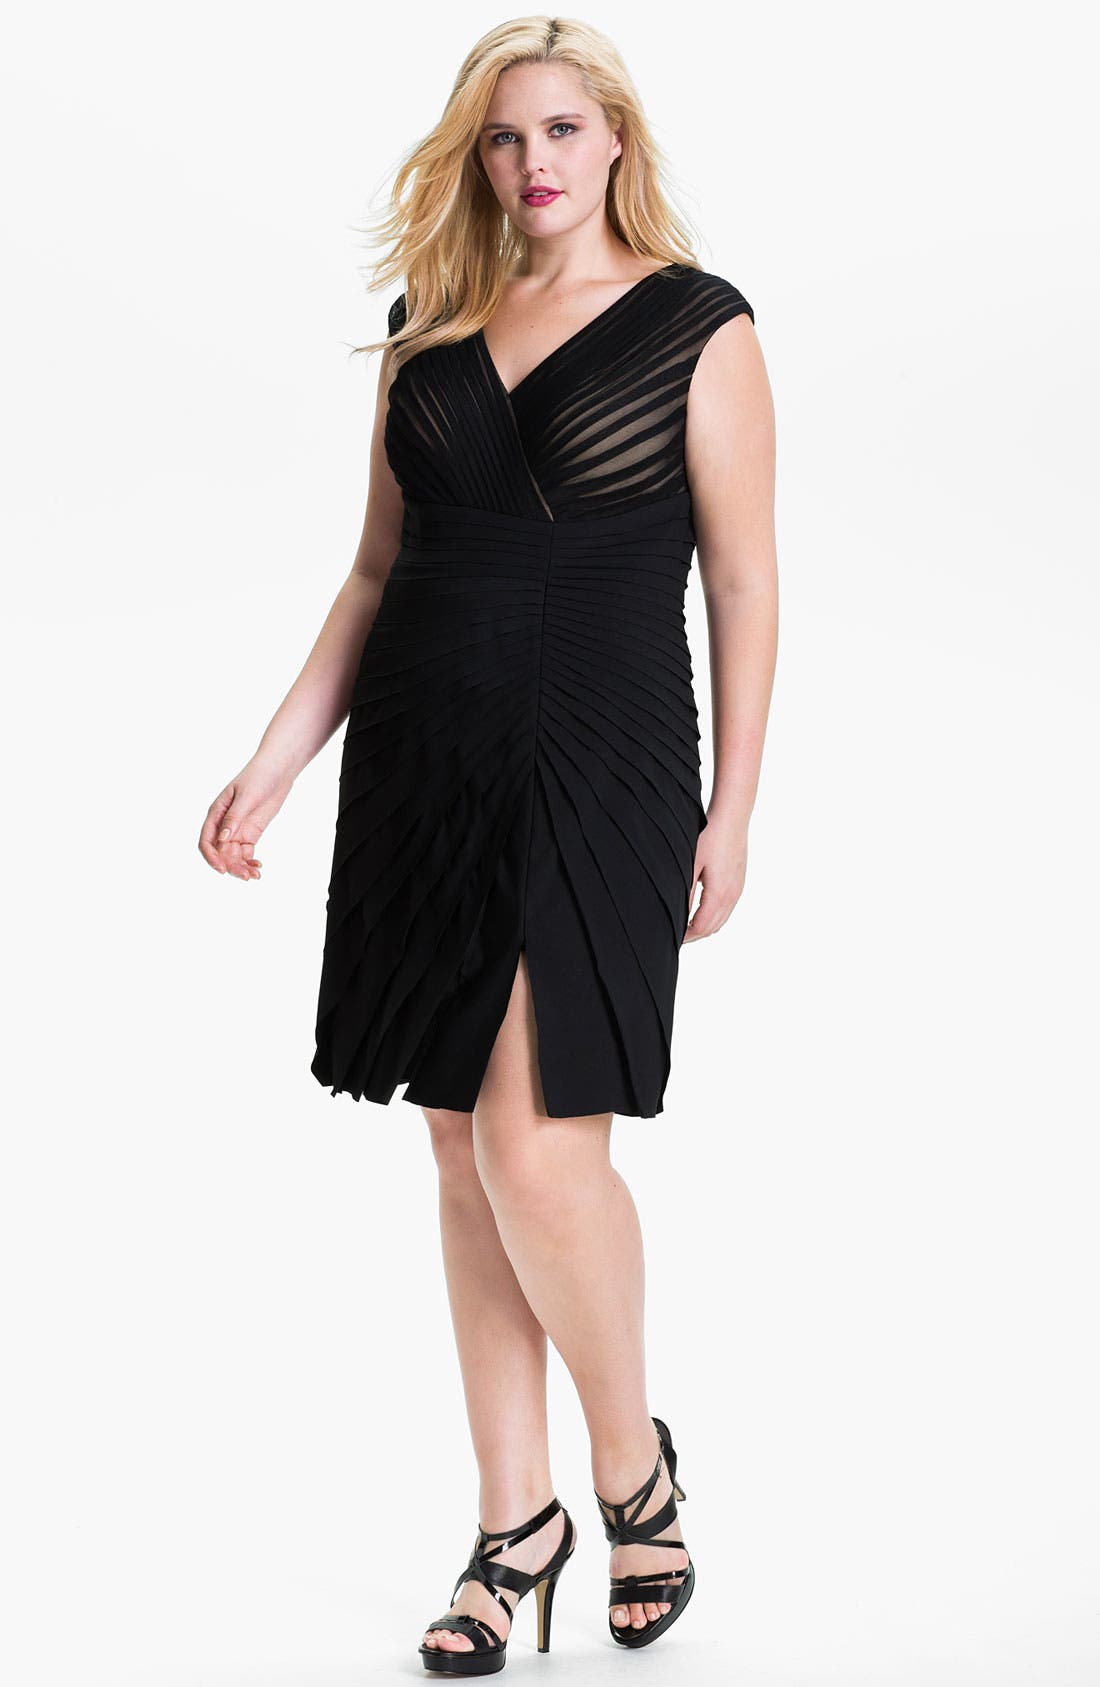 Alternate Image 1 Selected - Adrianna Papell Pleated Cap Sleeve Sheath Dress (Plus)